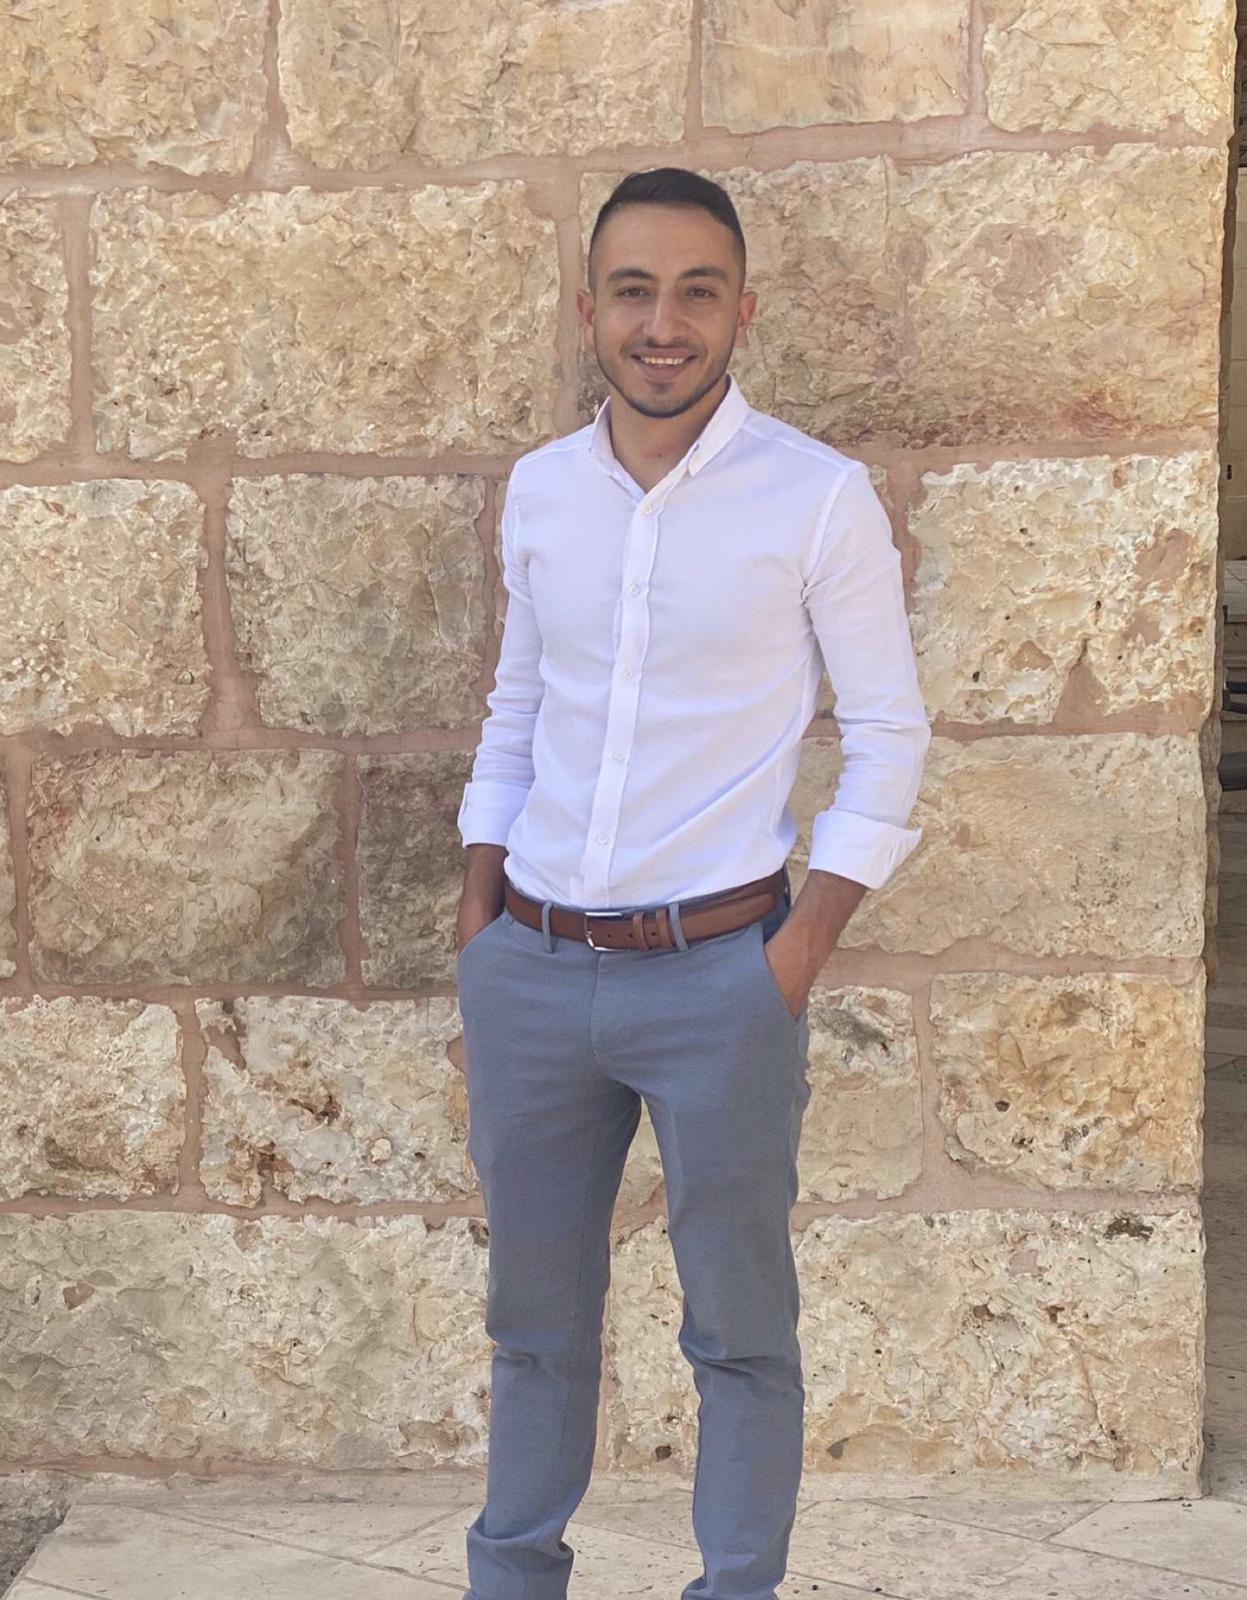 Elias Darqaabar, one of the youngest product managers in the Arab world